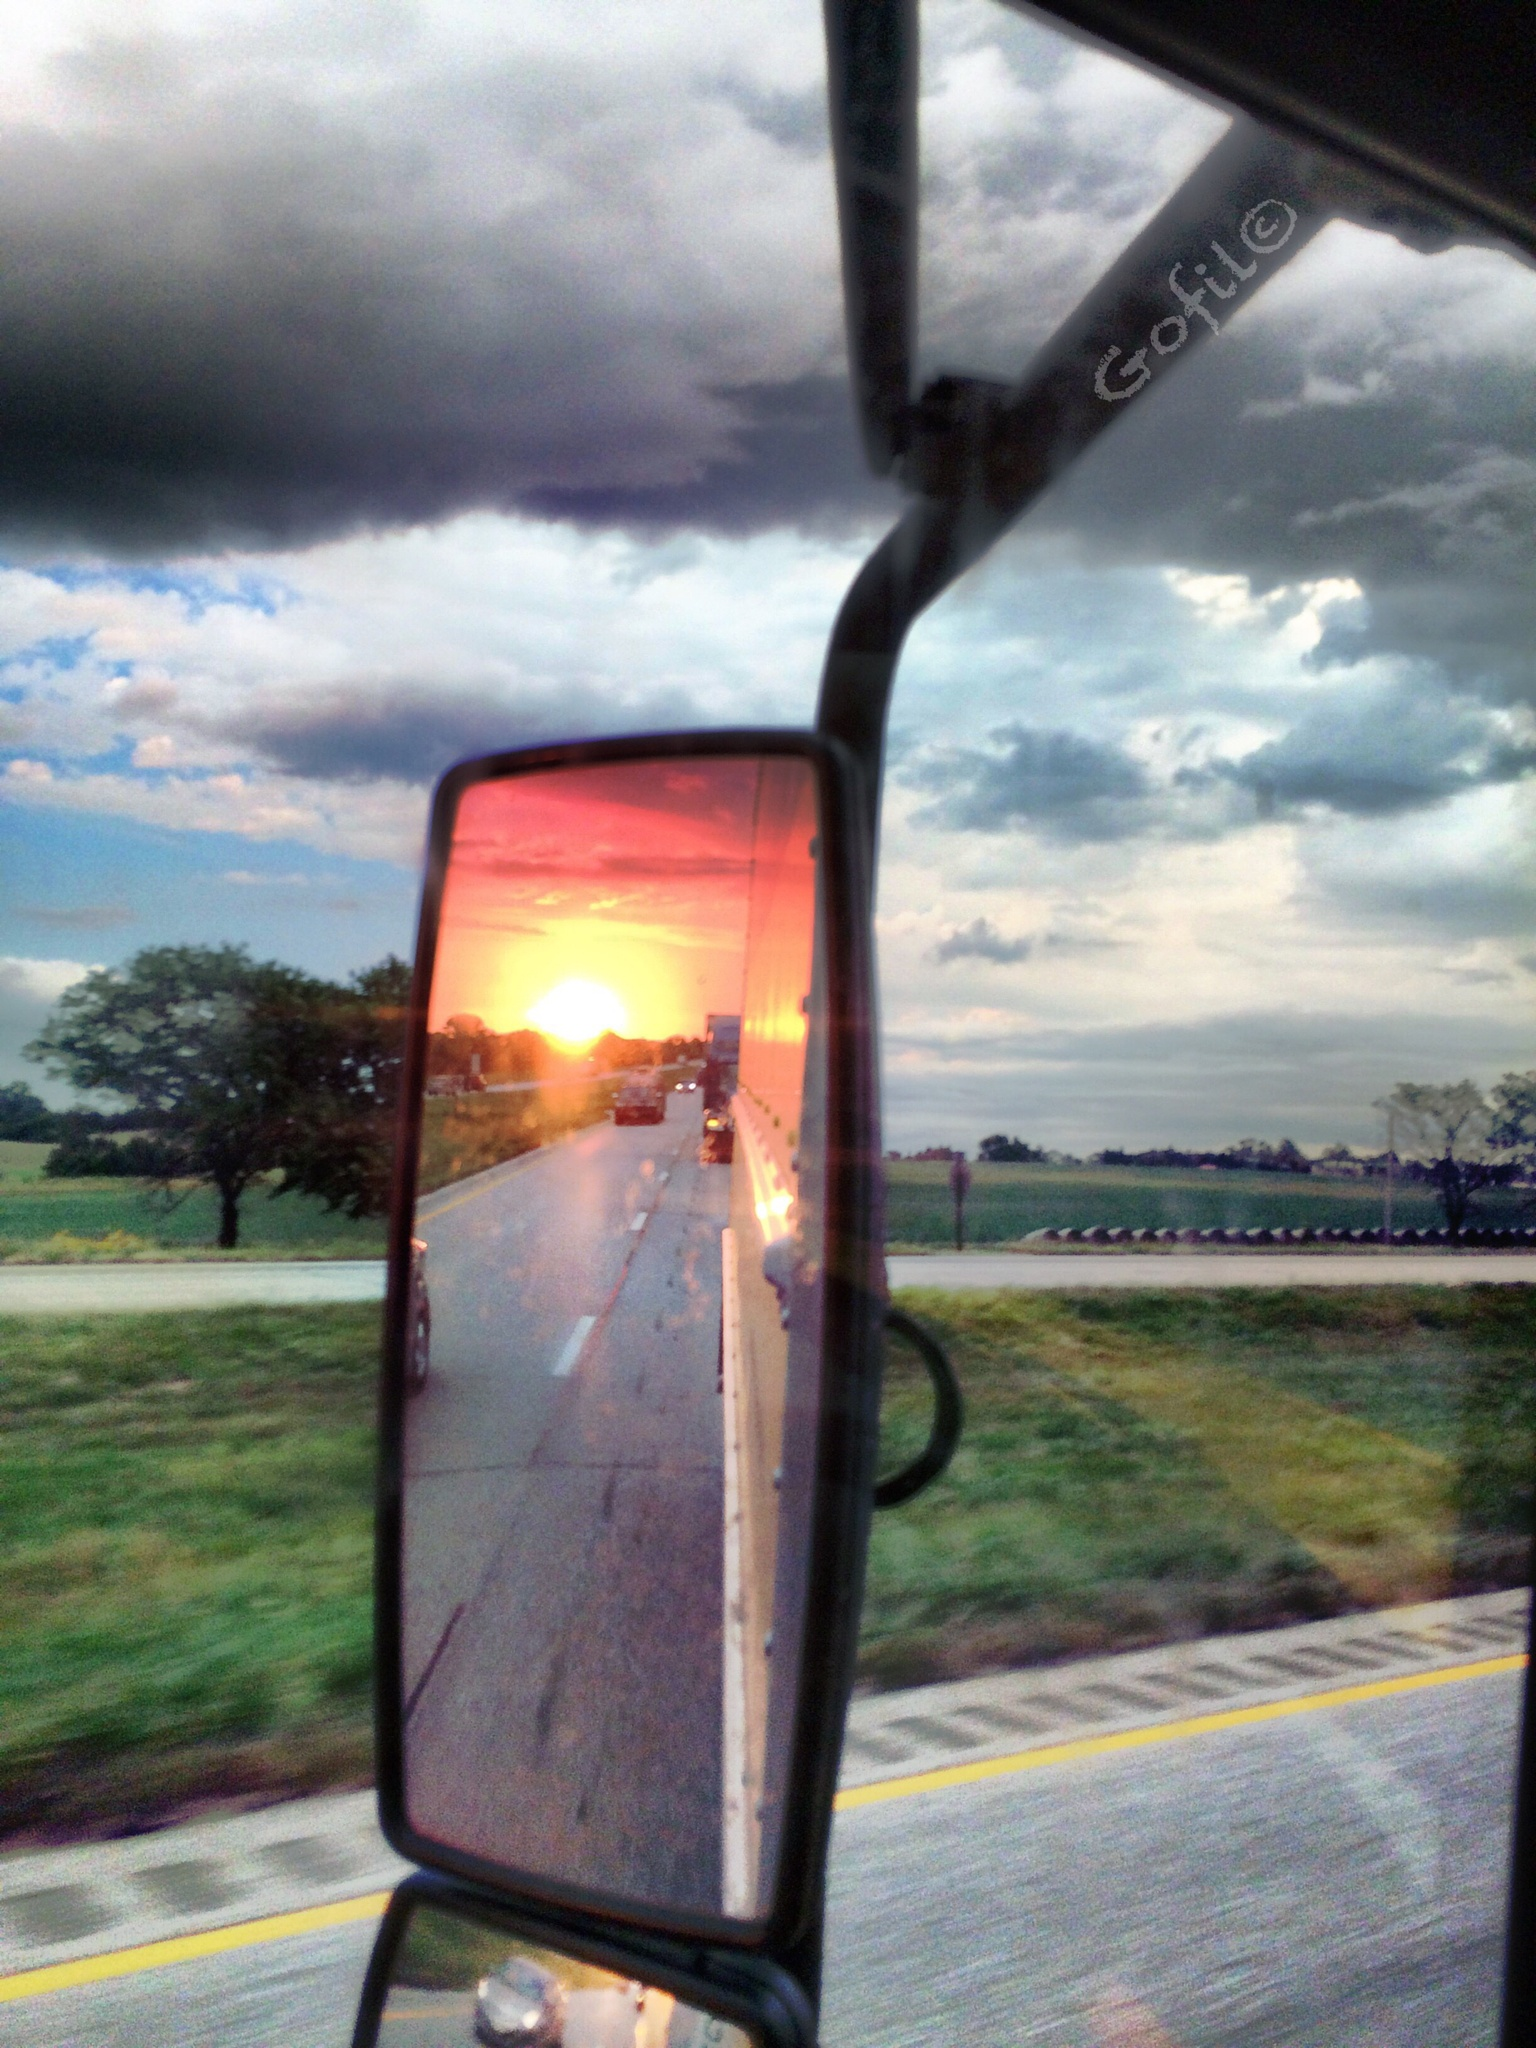 In the rear view by Gofil